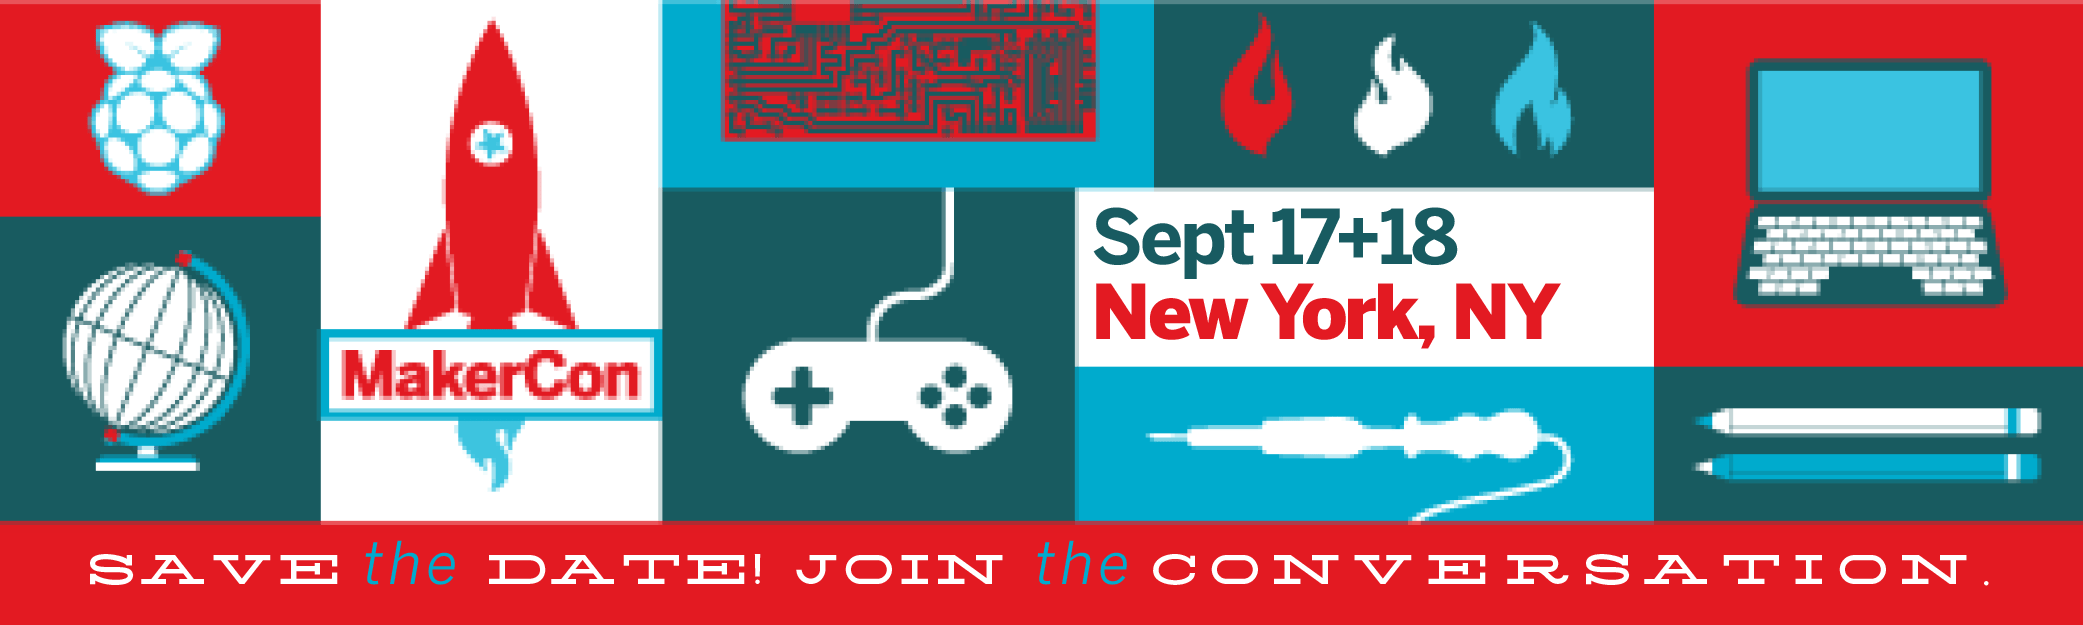 makercon-ny-500x150_savethedate_final